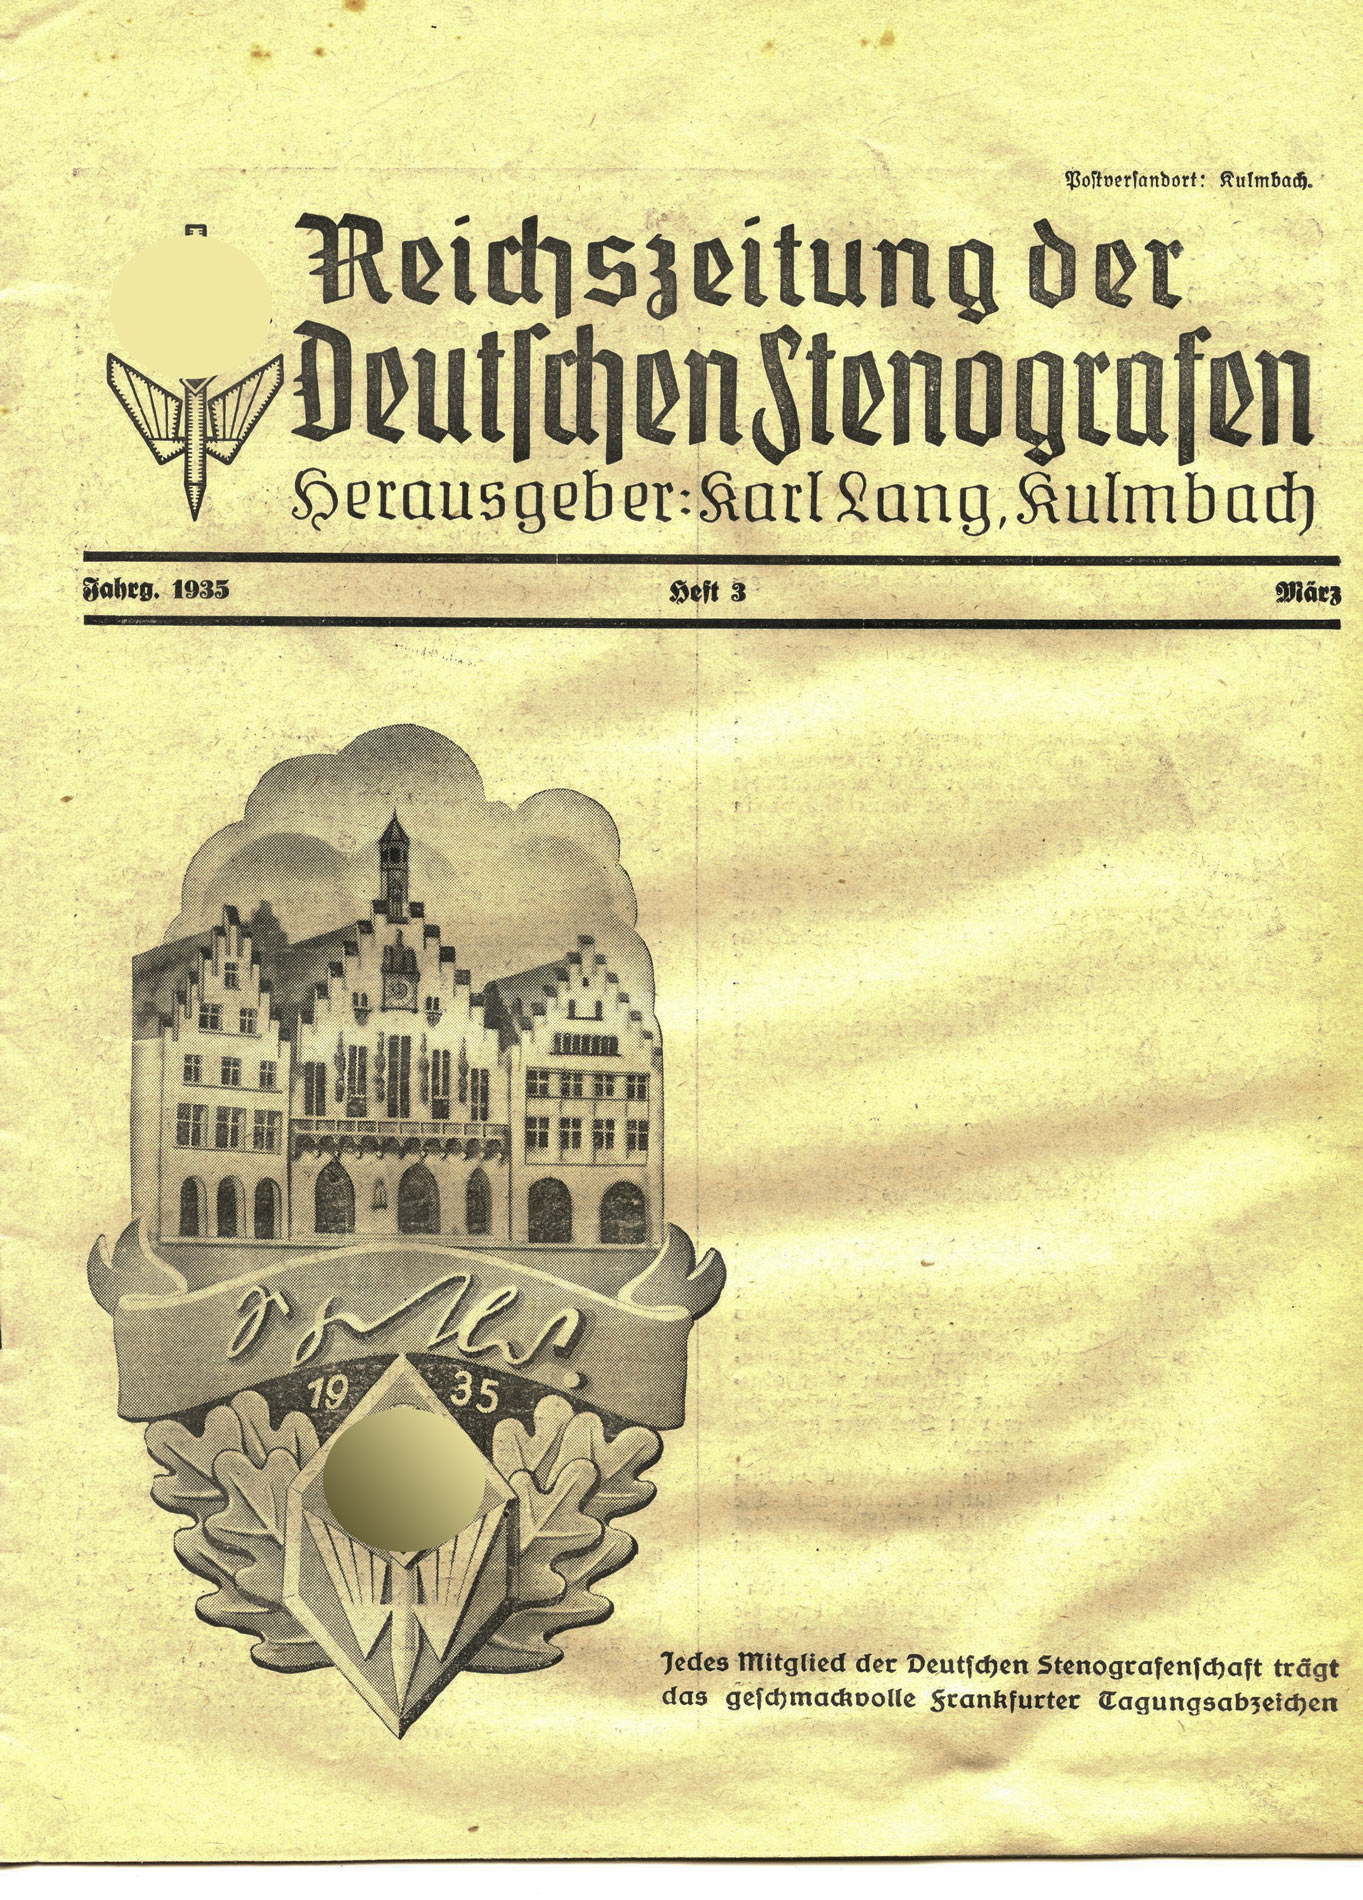 reichszeitung der deutschen stenografen heft 3 von 1935 fund kiste antik ostalgie fundst cke. Black Bedroom Furniture Sets. Home Design Ideas